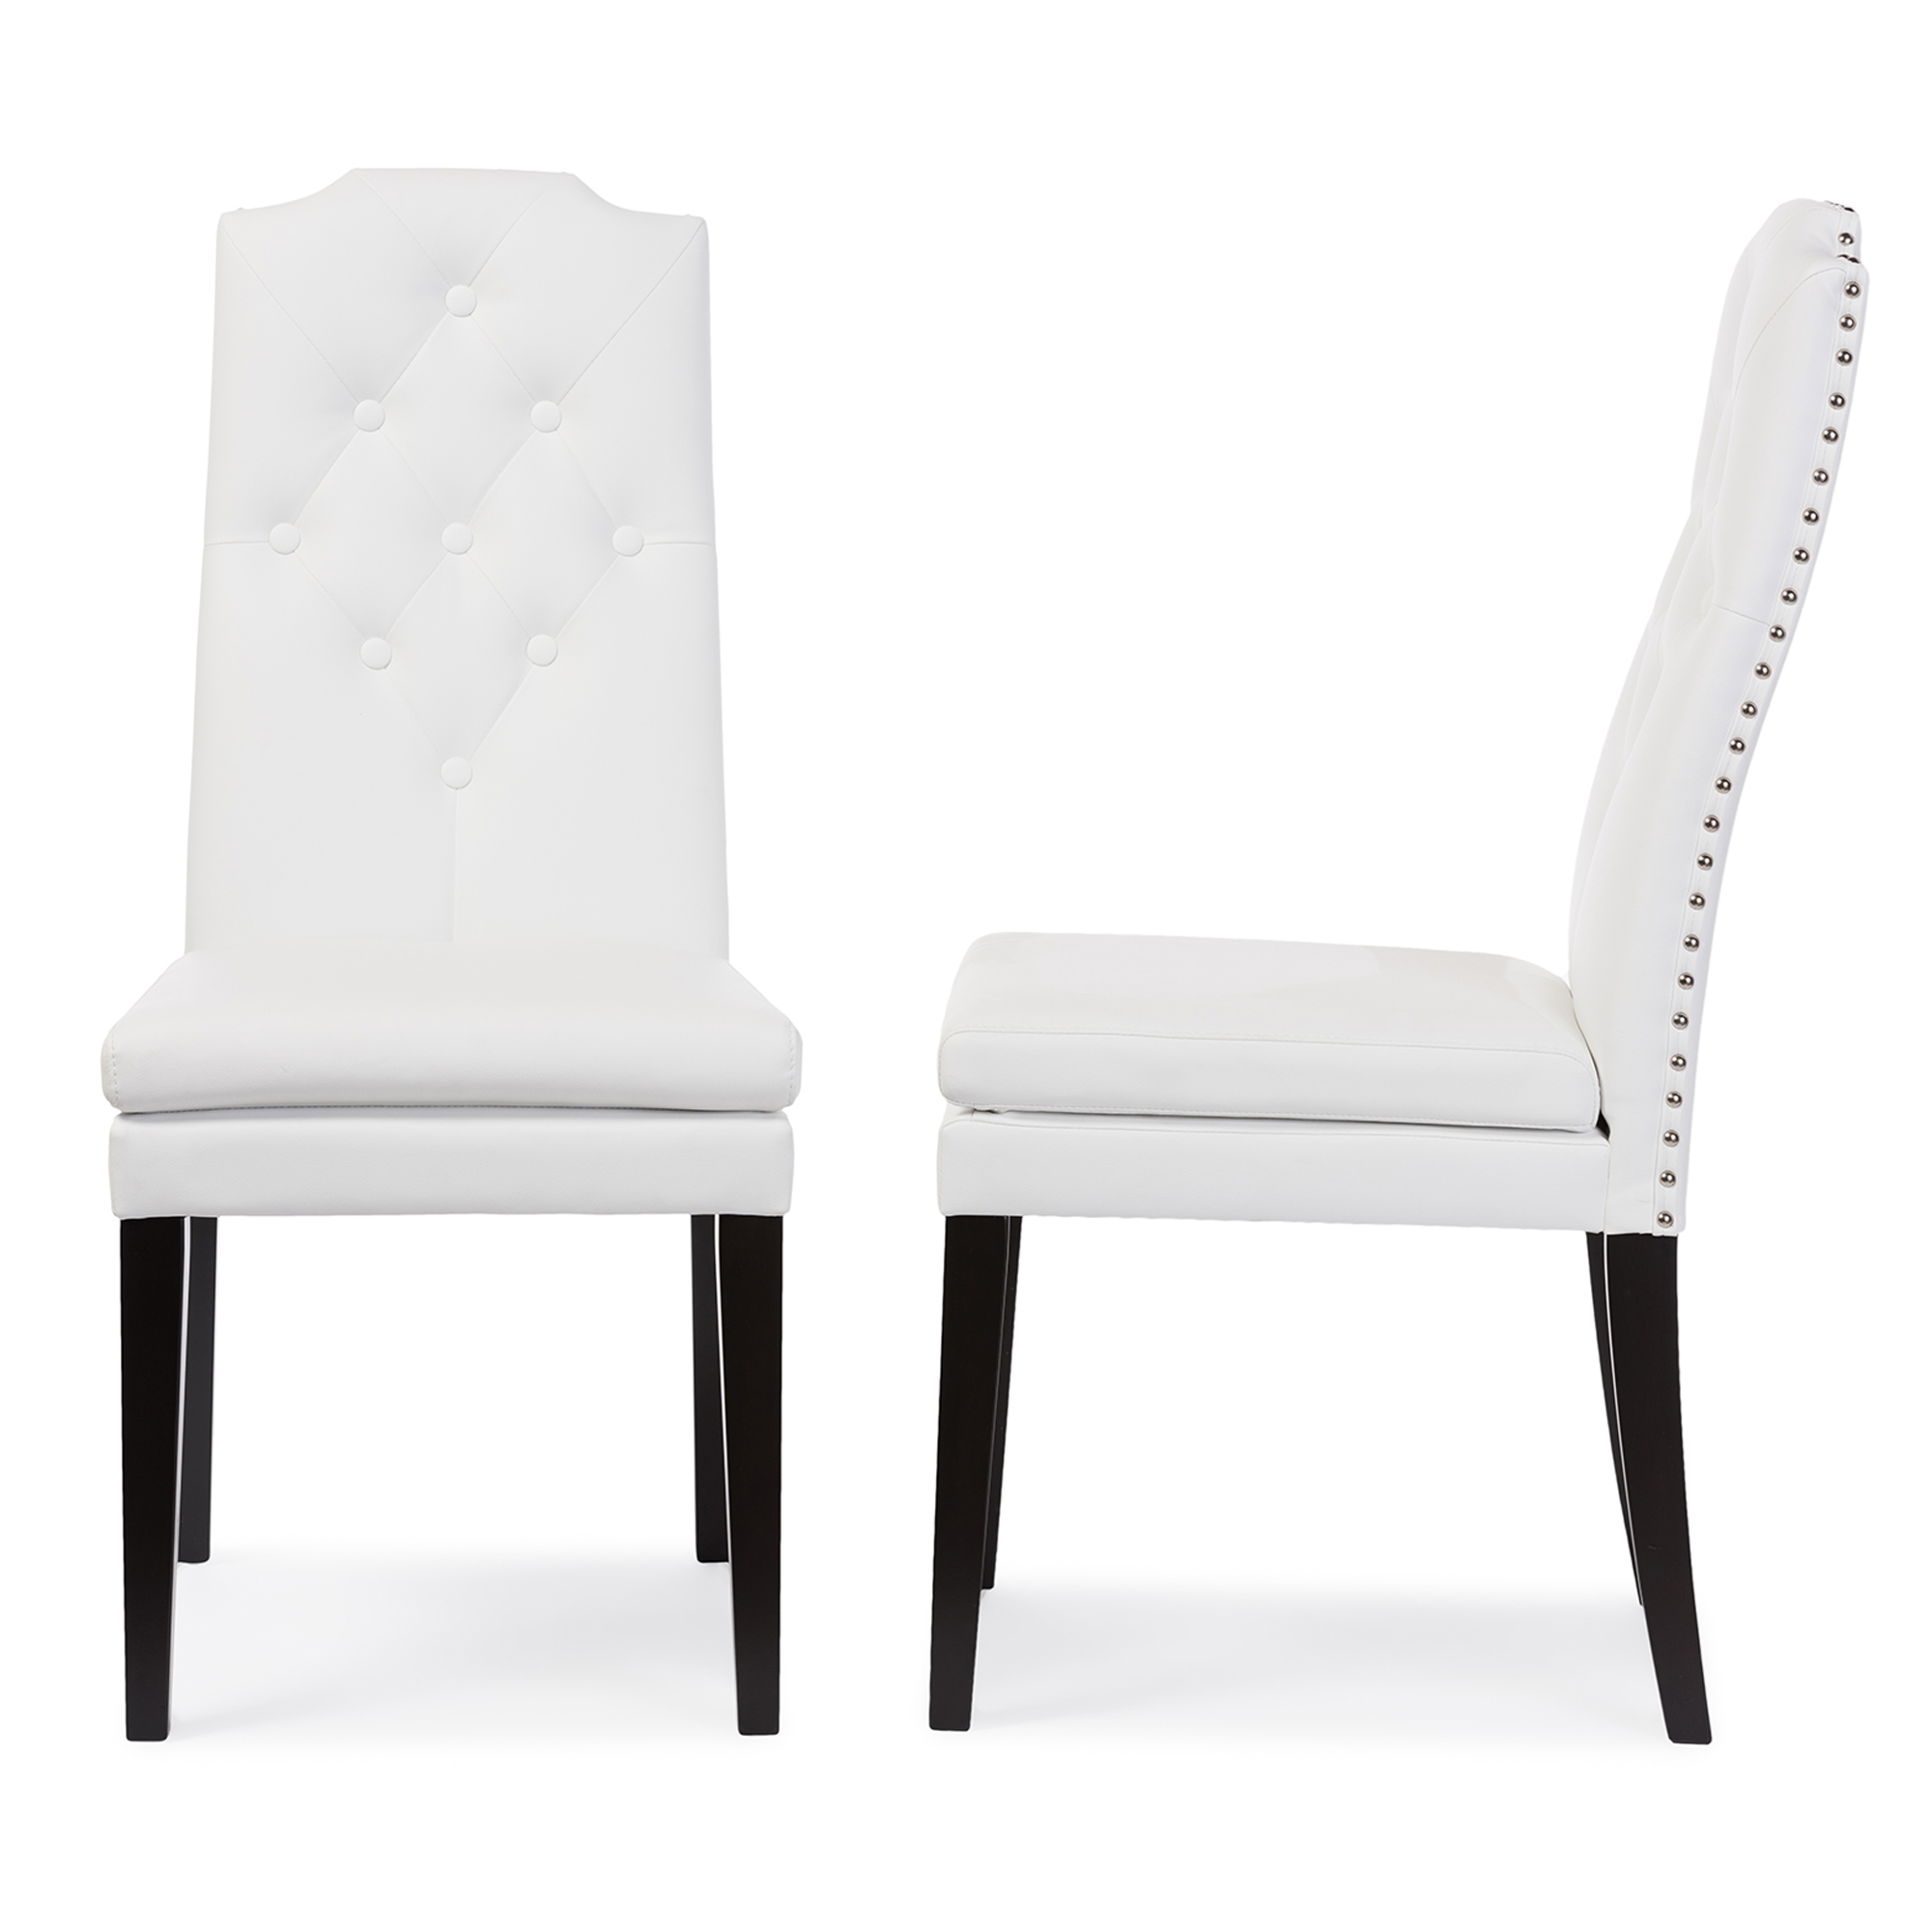 Baxton Studio Dylin Modern and Contemporary White Faux Leather  Button-Tufted Nail heads Trim Dining Chair